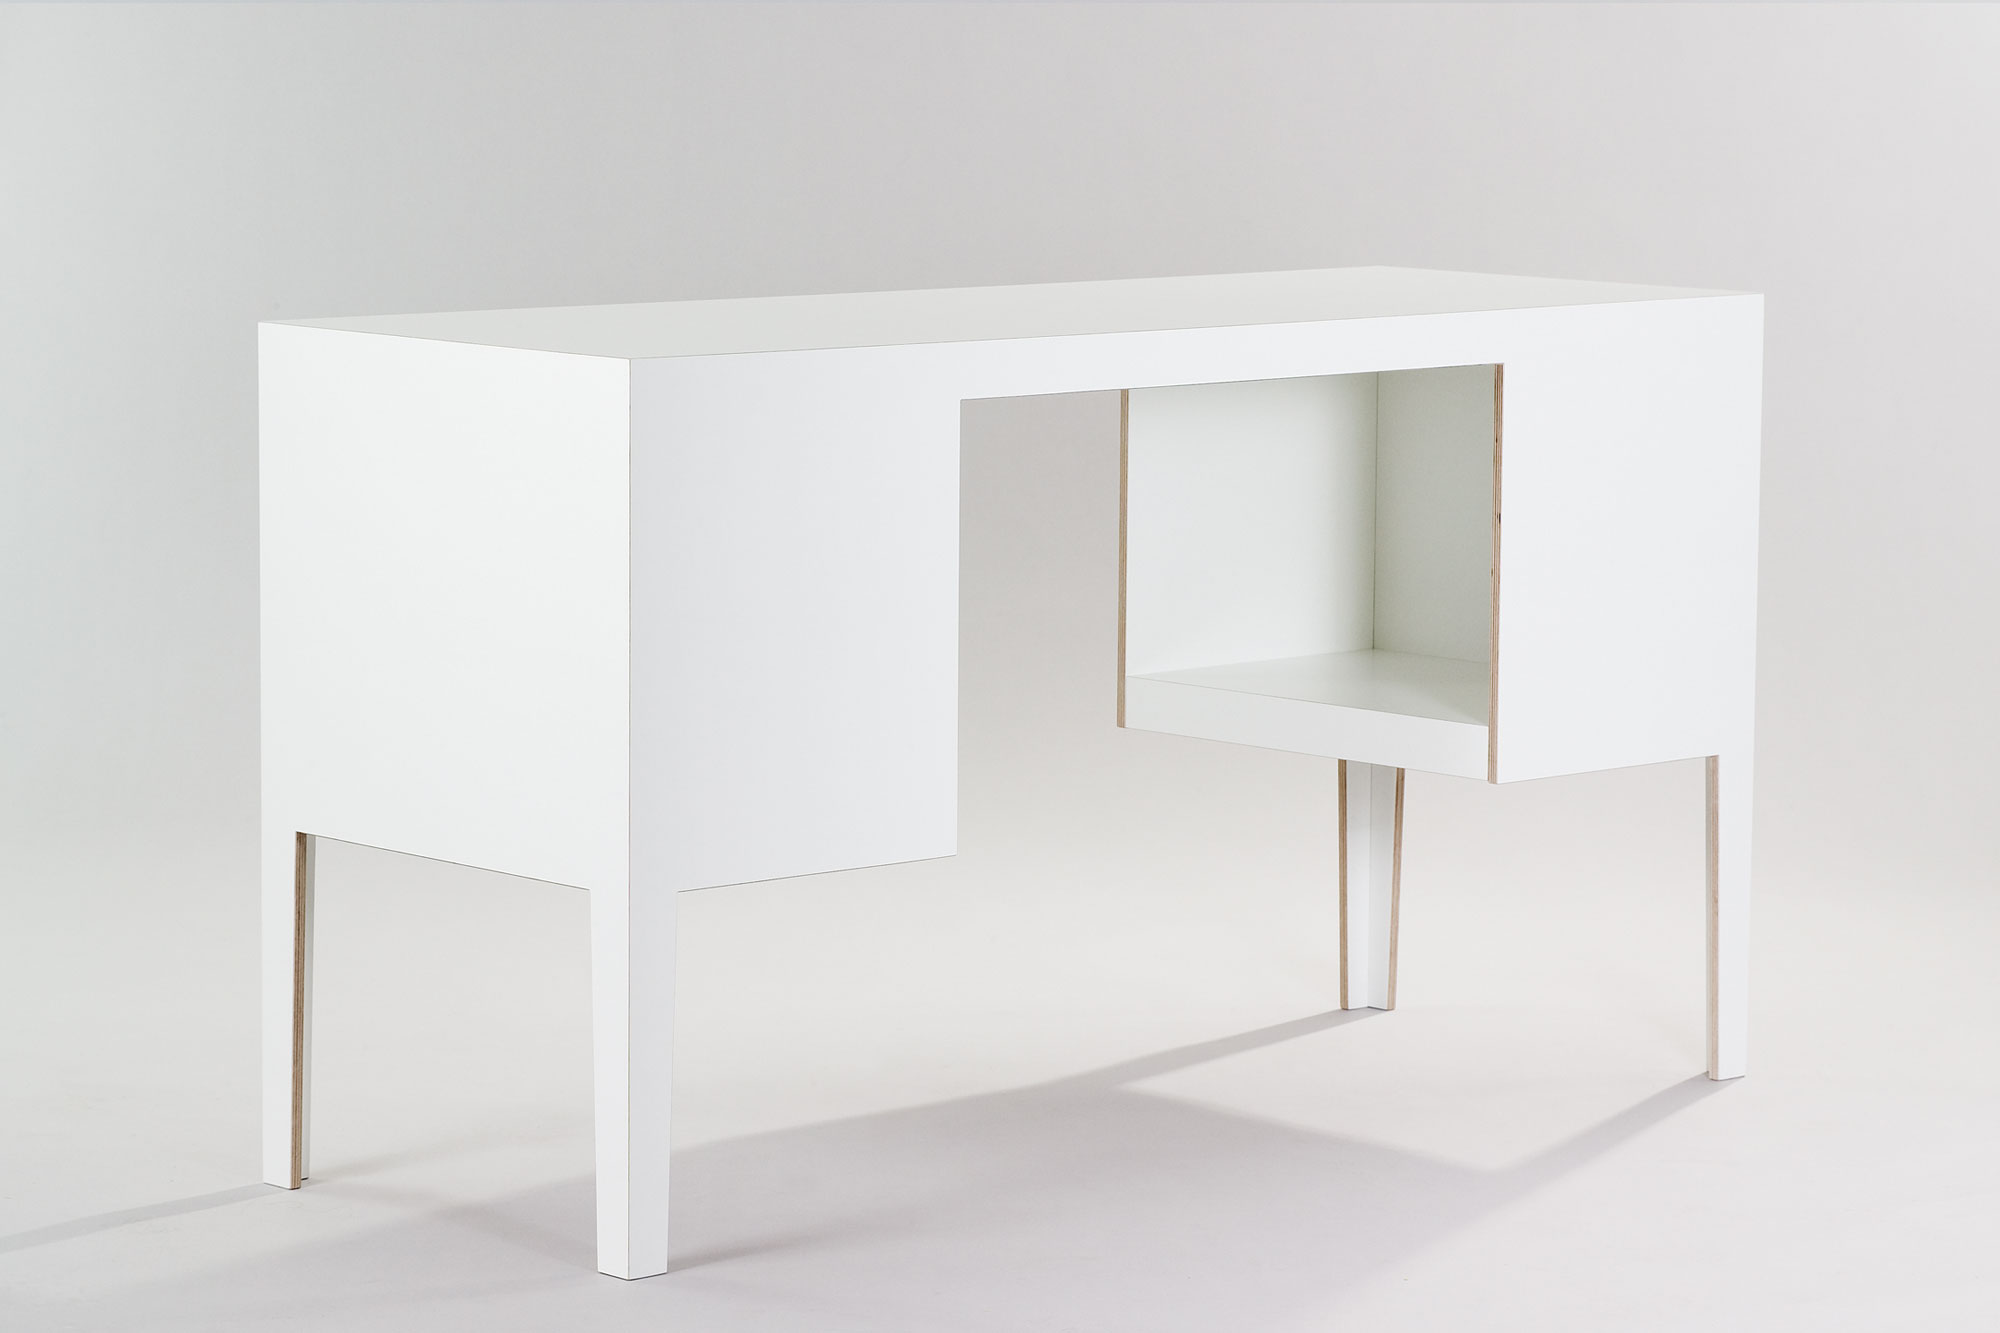 000-morgen-kollektion-desk-2